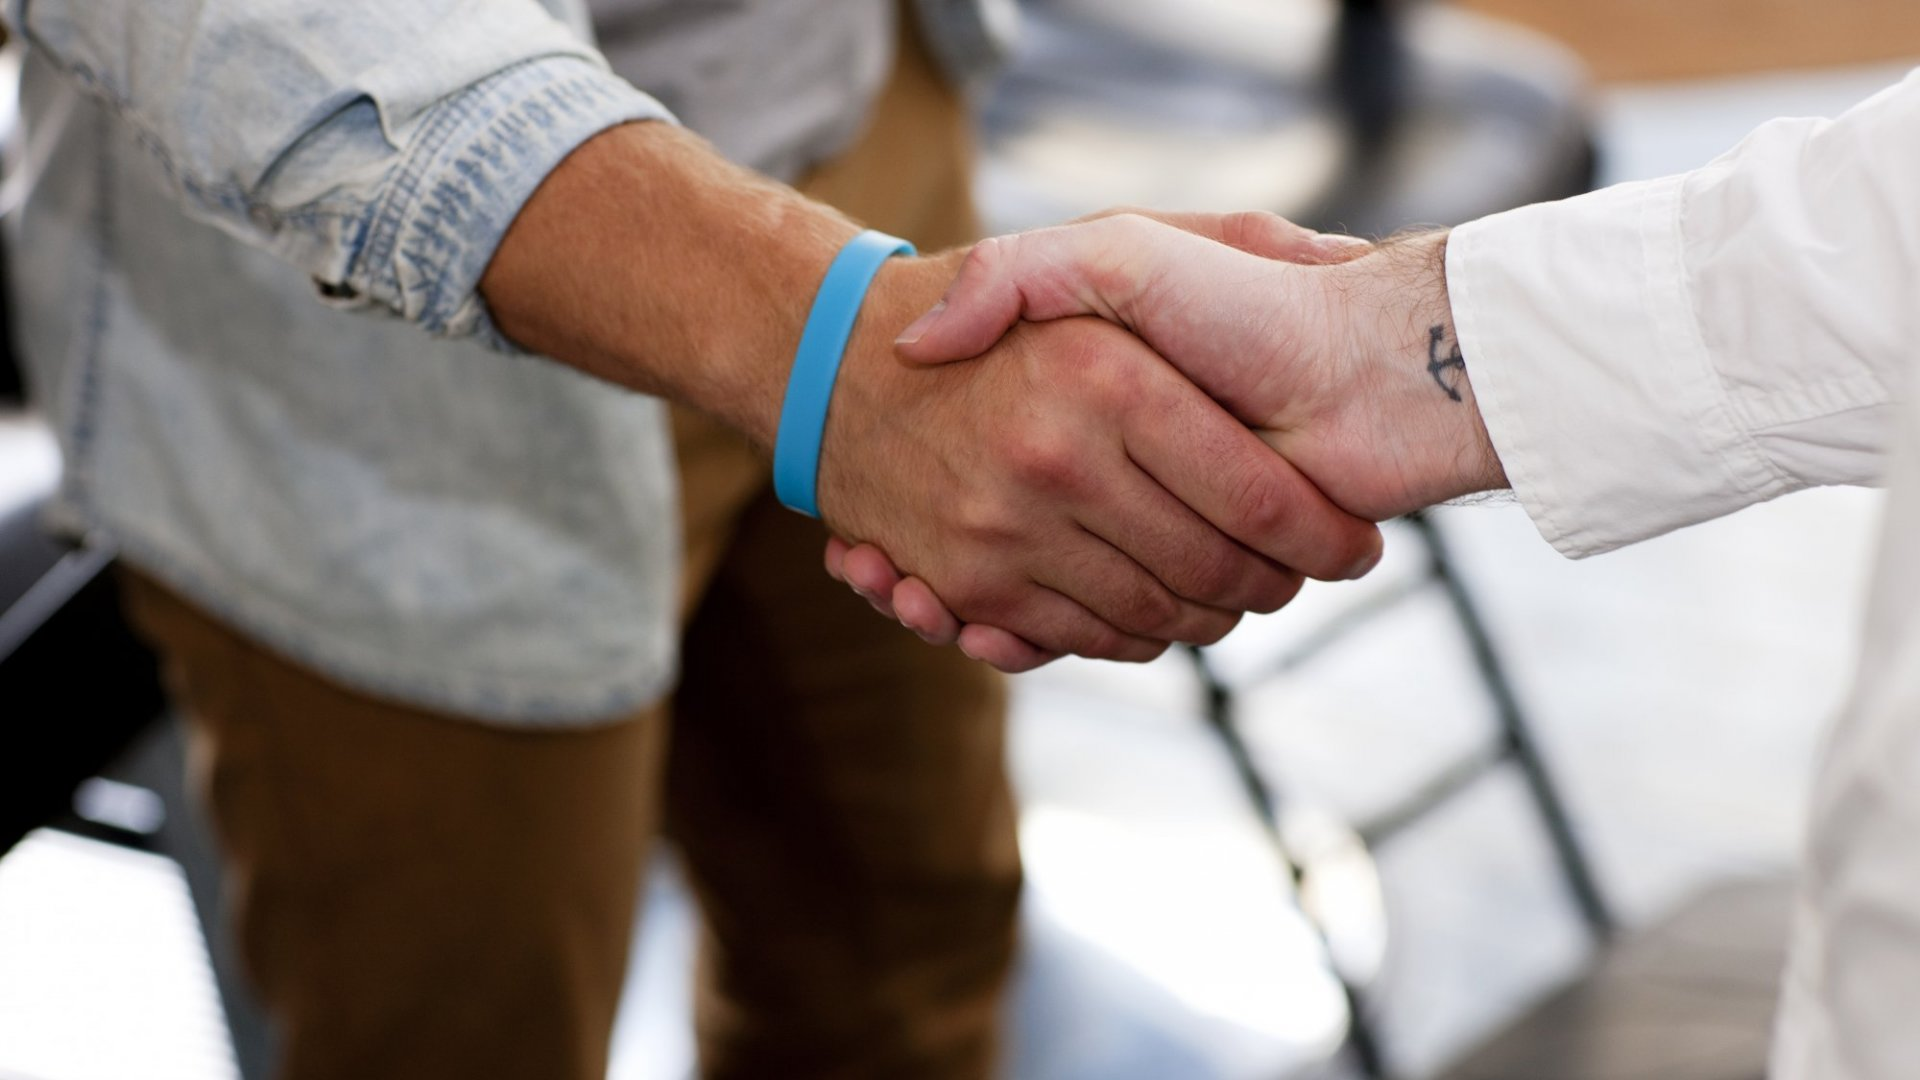 6 Ways to Make an Outstanding First Impression